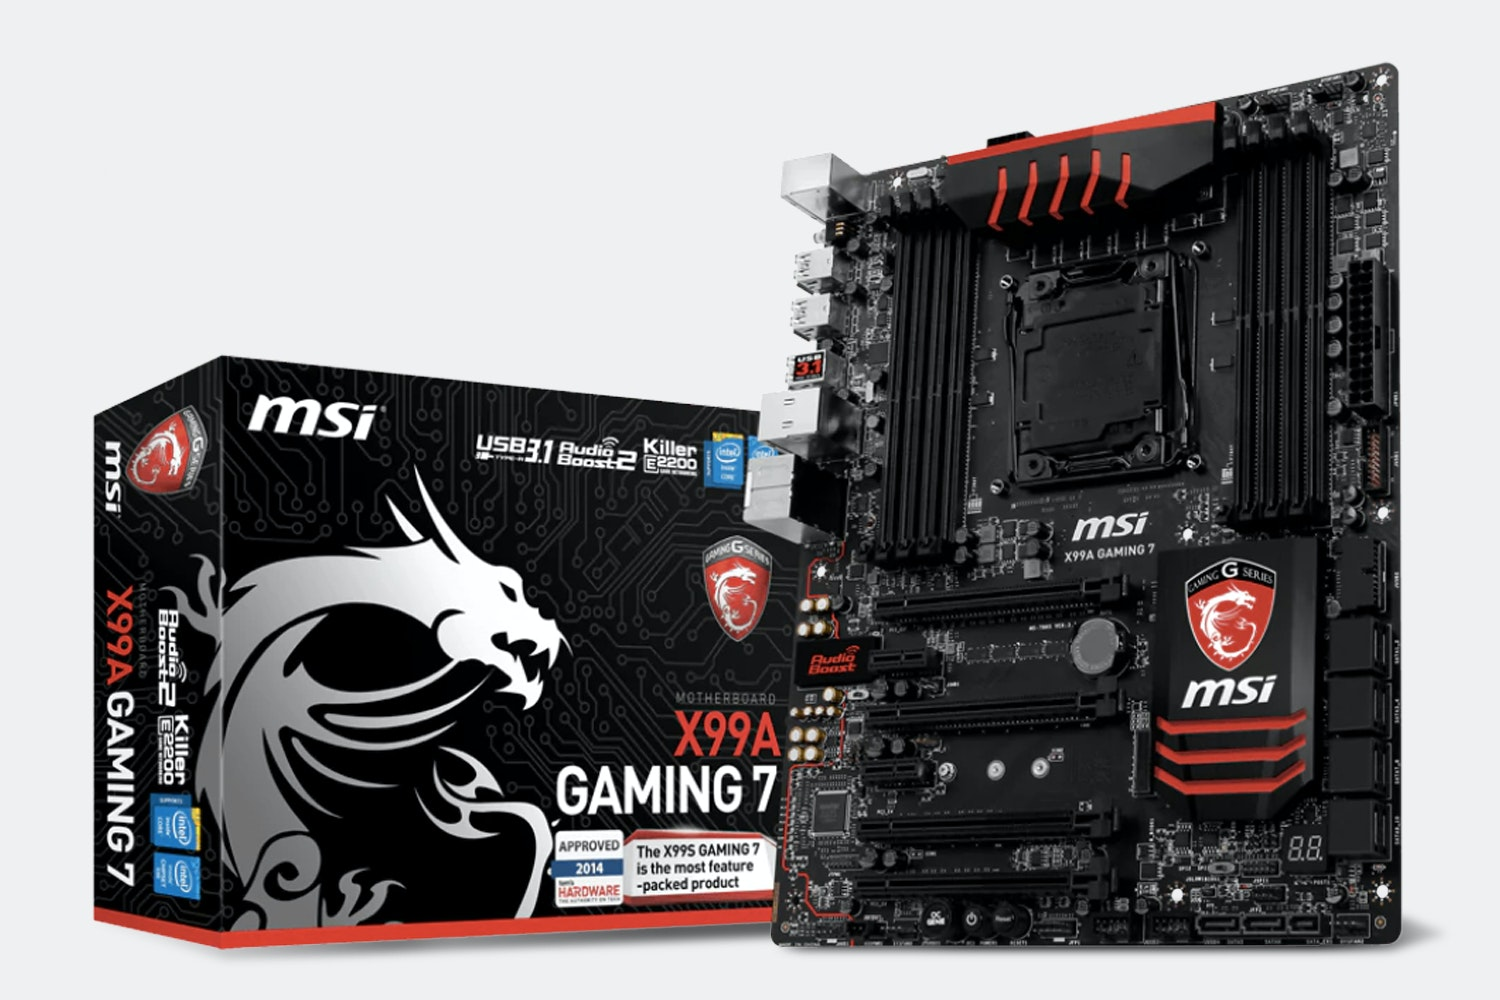 MSI X99A Gaming Motherboards